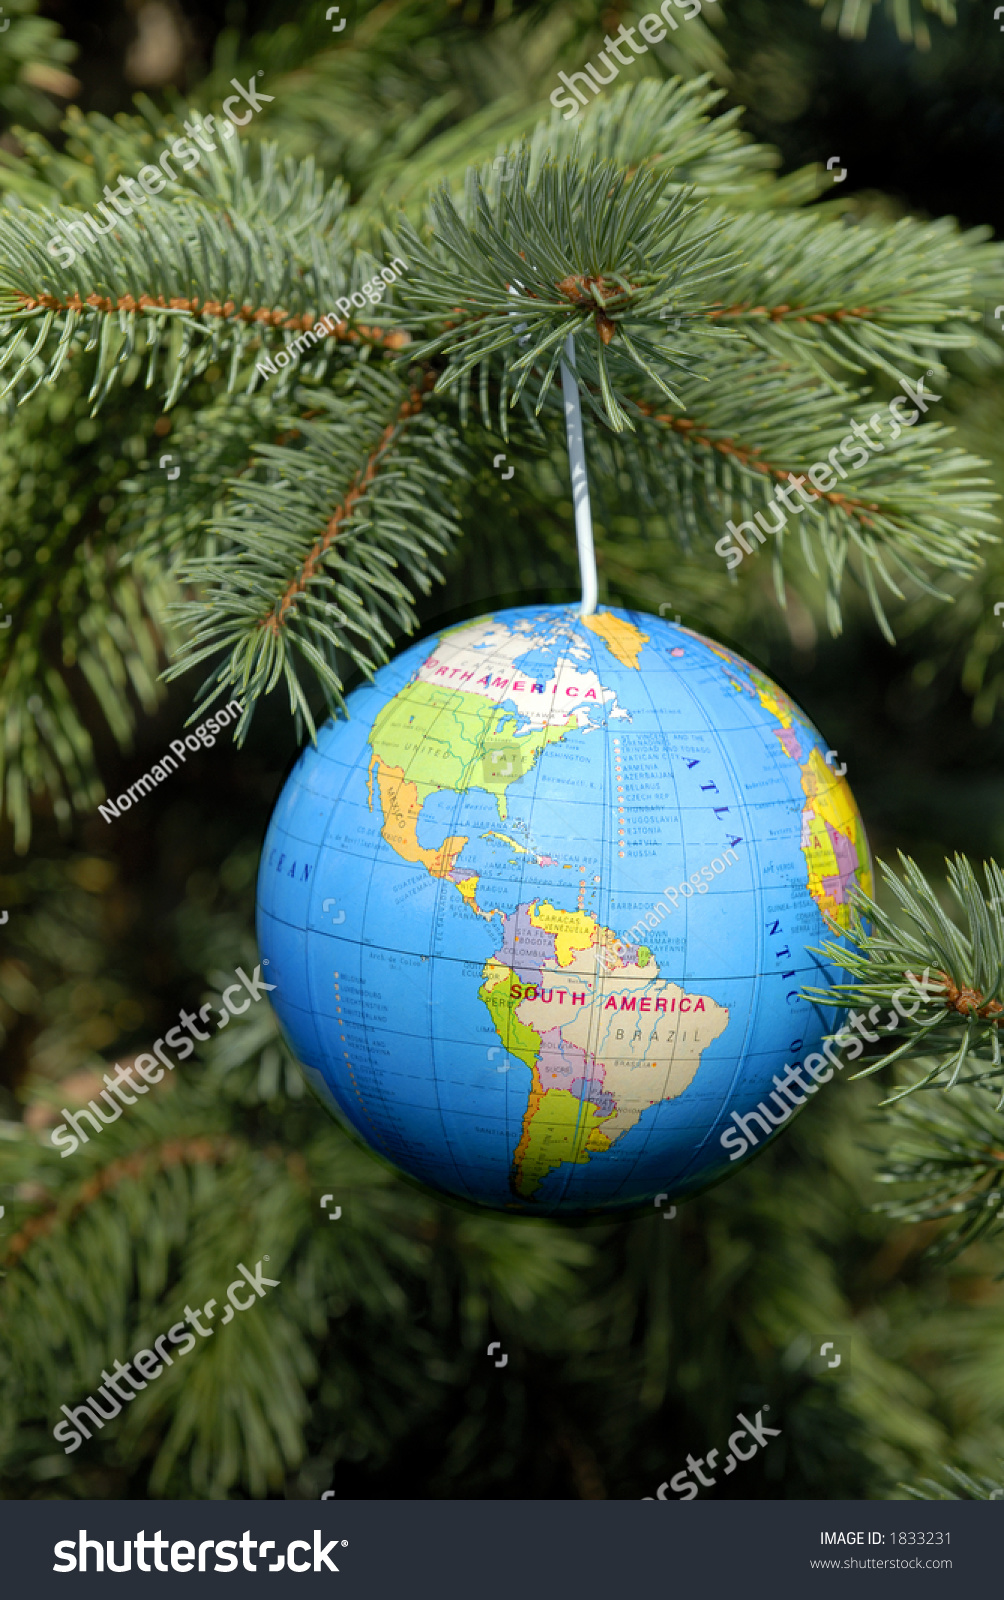 World globe christmas ornaments - World Globe Christmas Decoration Hanging On A Christmas Tree Preview Save To A Lightbox